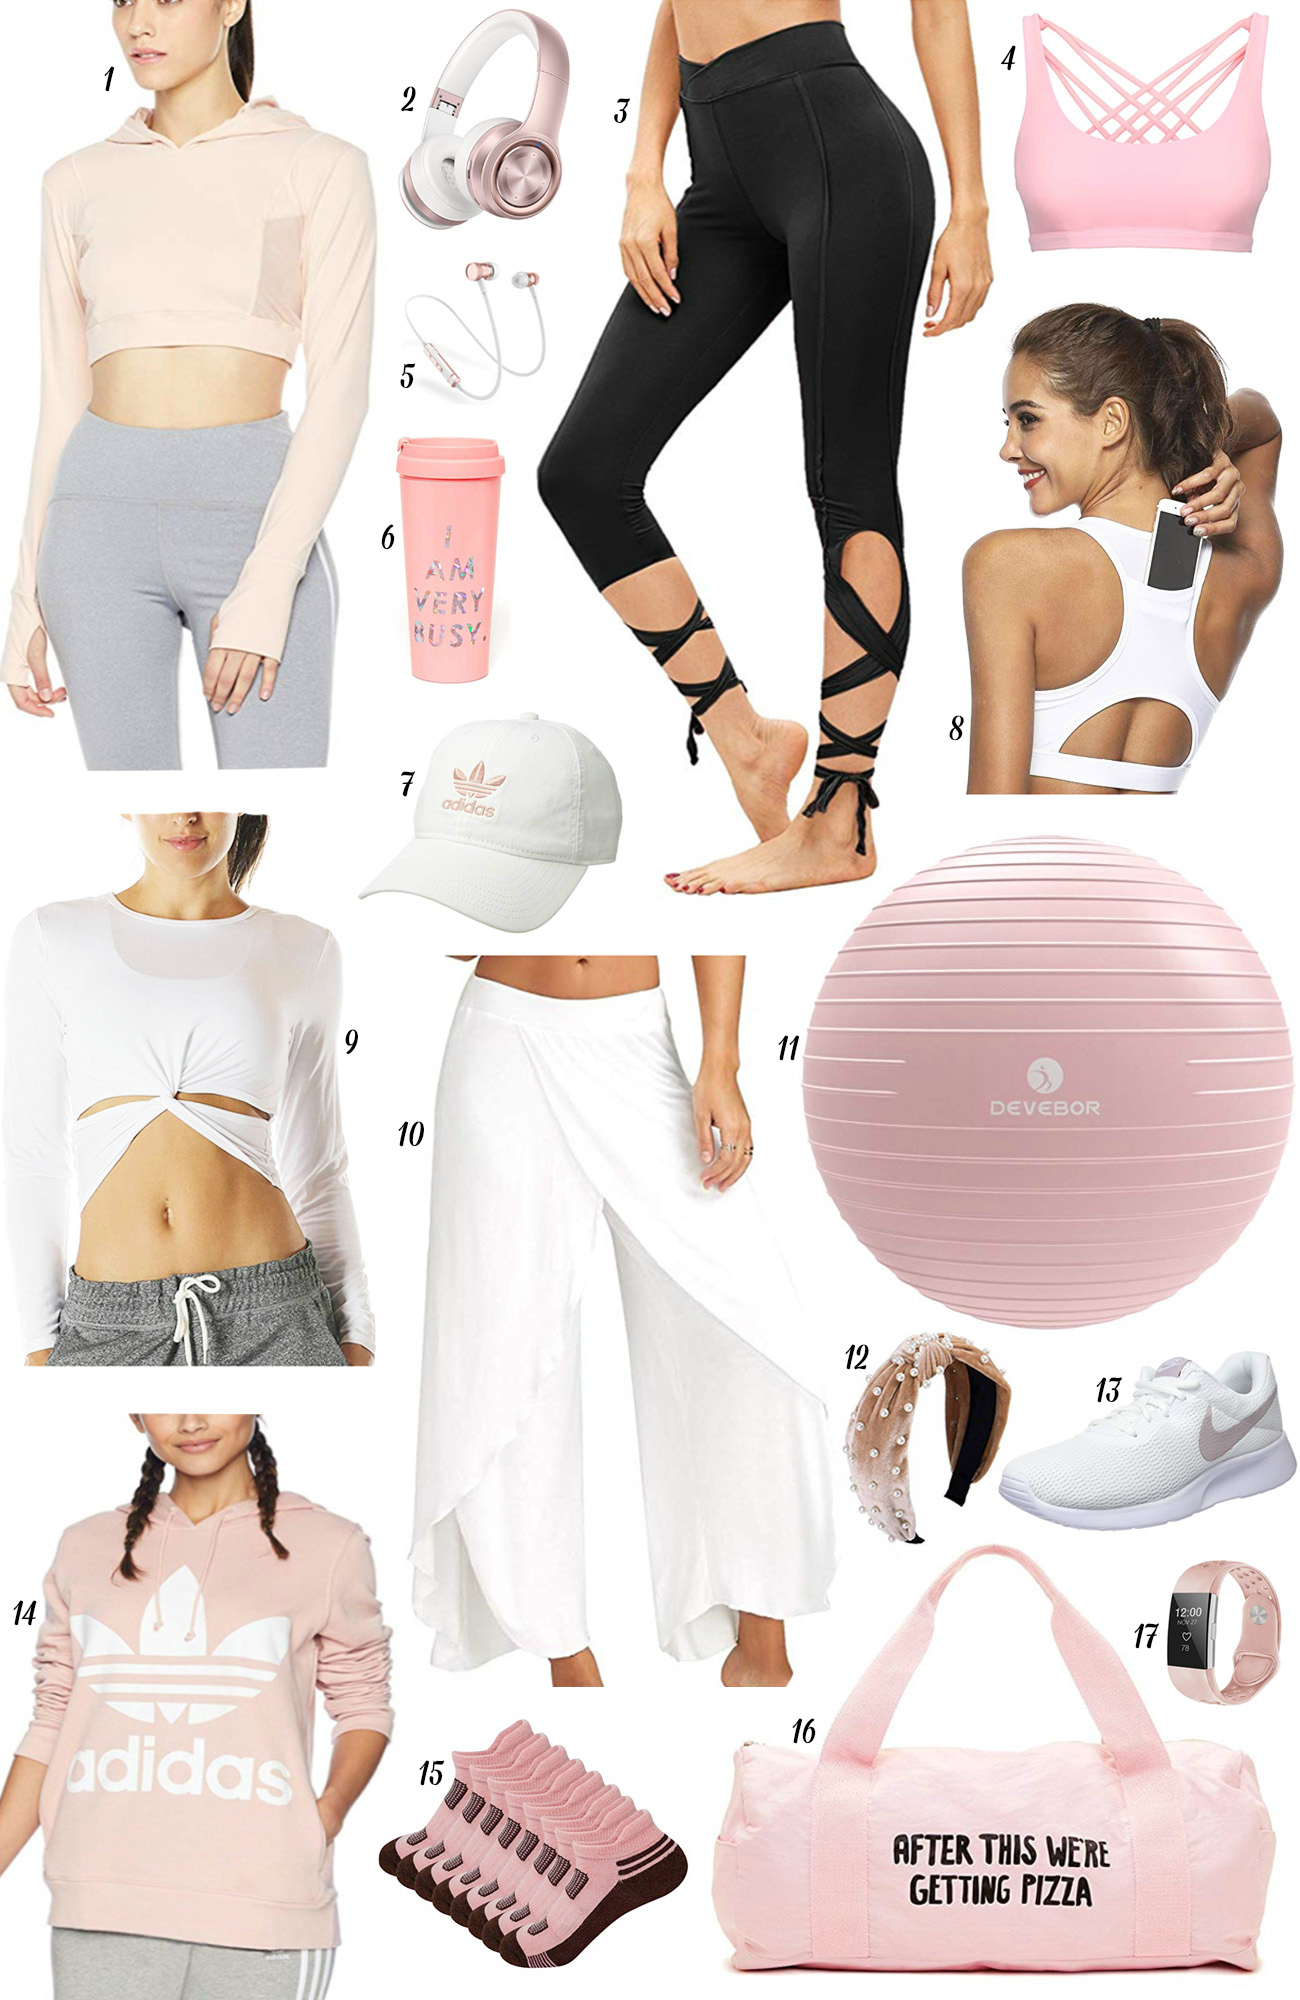 cute sassy workout gear | Mash Elle beauty blogger | fashion blogger | what to wear at the gym | gym outfit | adidas tee | leggings | gym bag